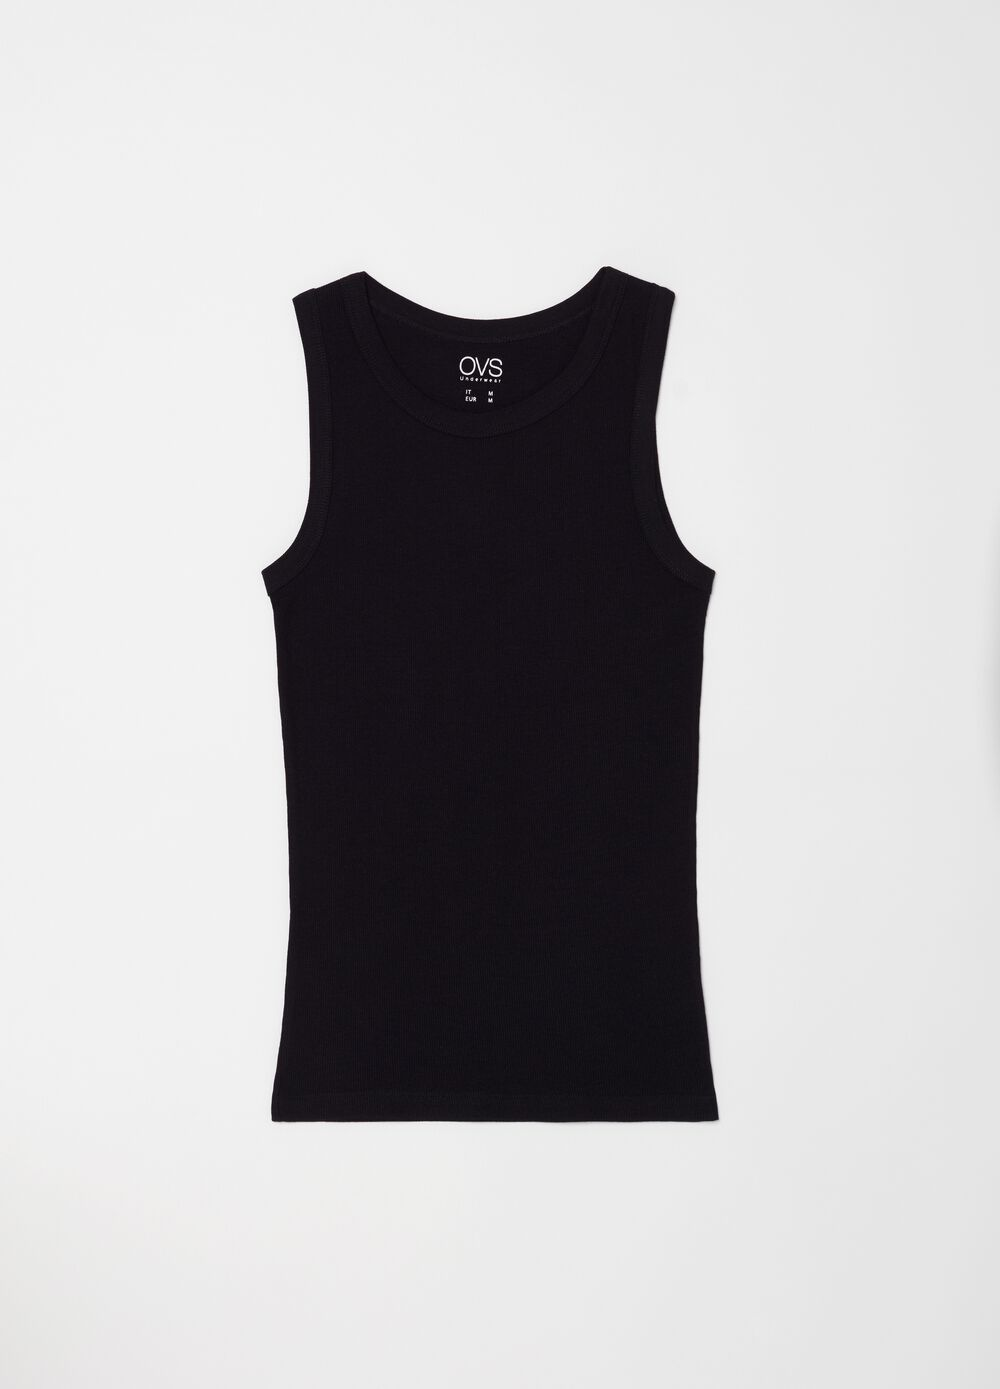 Ribbed cotton racerback top with wide shoulder straps